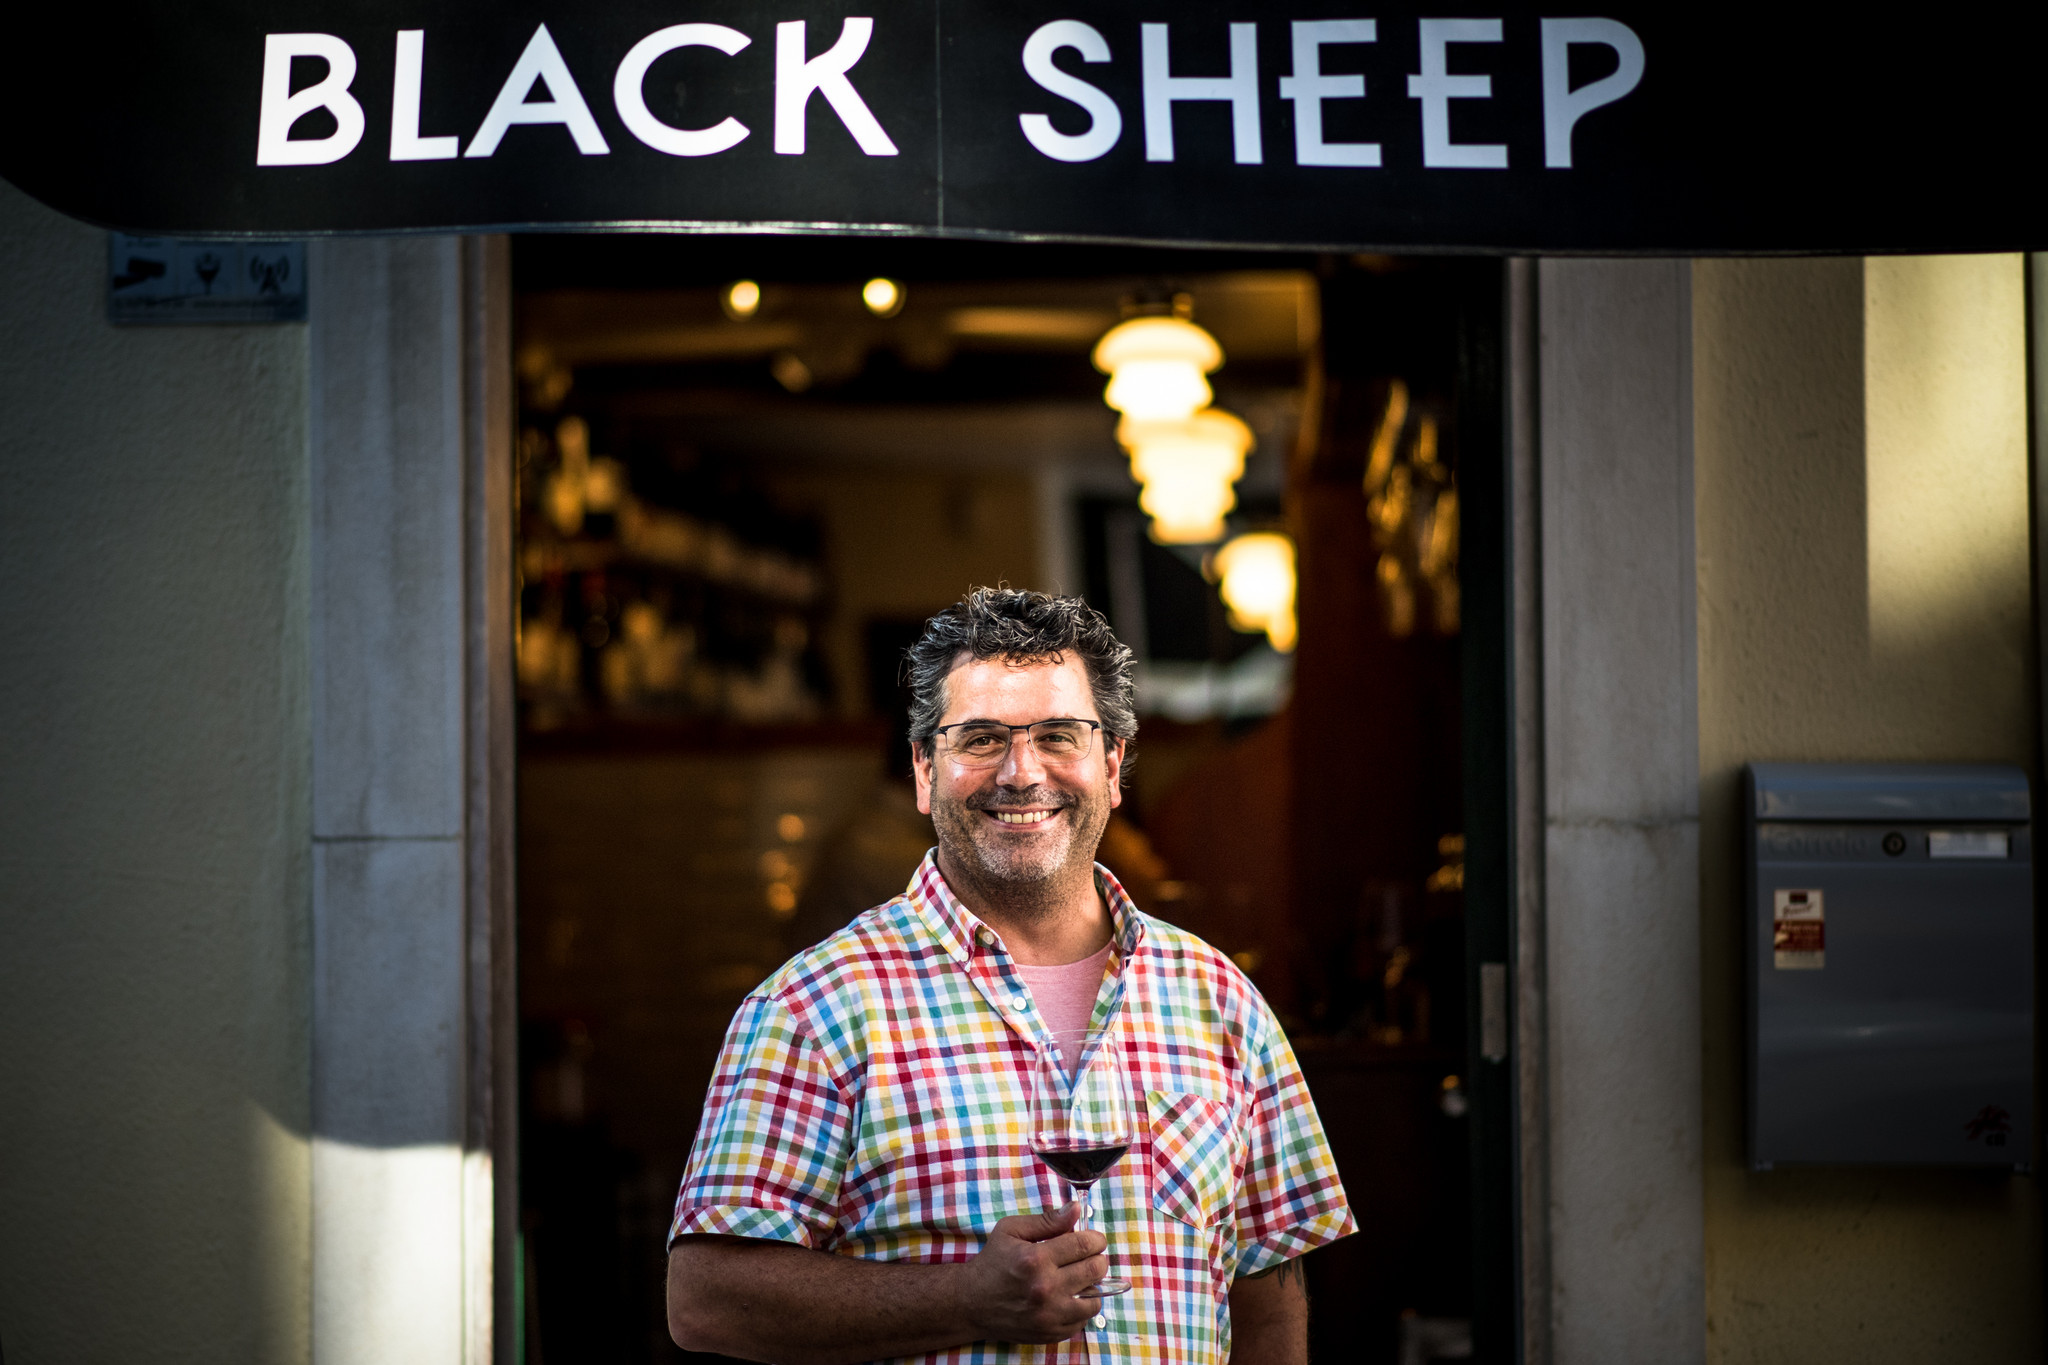 wine bar Black Sheep_GONCALO VILLAVERDE_360.JPG